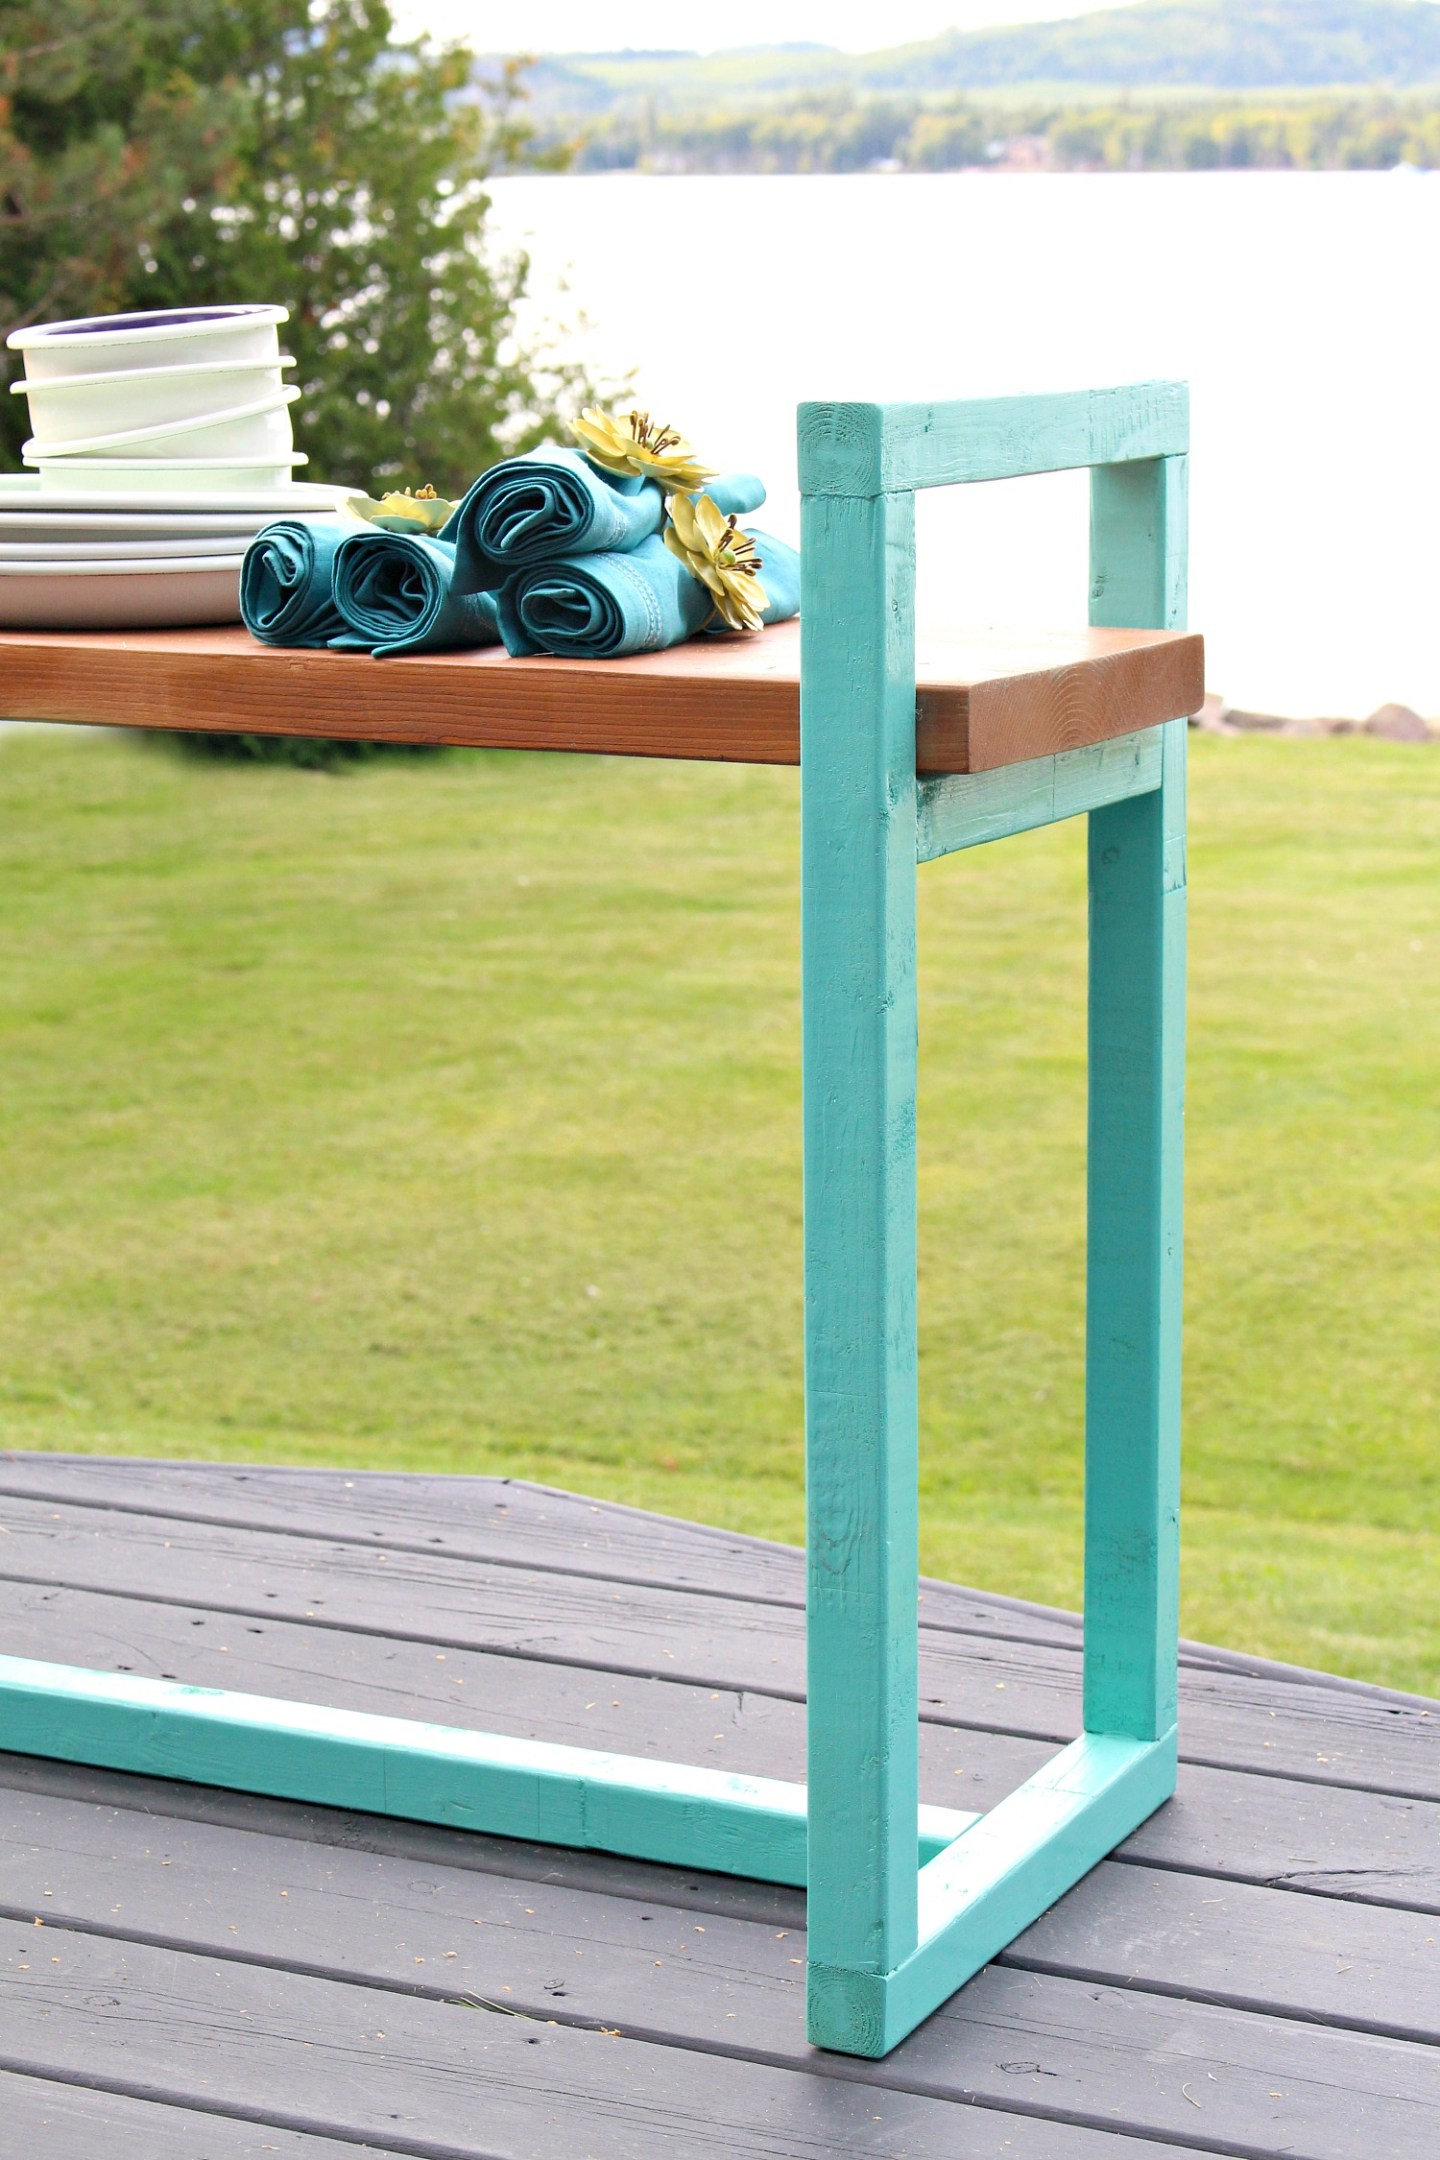 Beginner DIY Wood Bench Project for Outdoors   Easy DIY Bench with Minimal Tools (Sponsored by The Home Depot Canada)Beginner DIY Wood Bench Project for Outdoors   Easy DIY Bench with Minimal Tools (Sponsored by The Home Depot Canada)